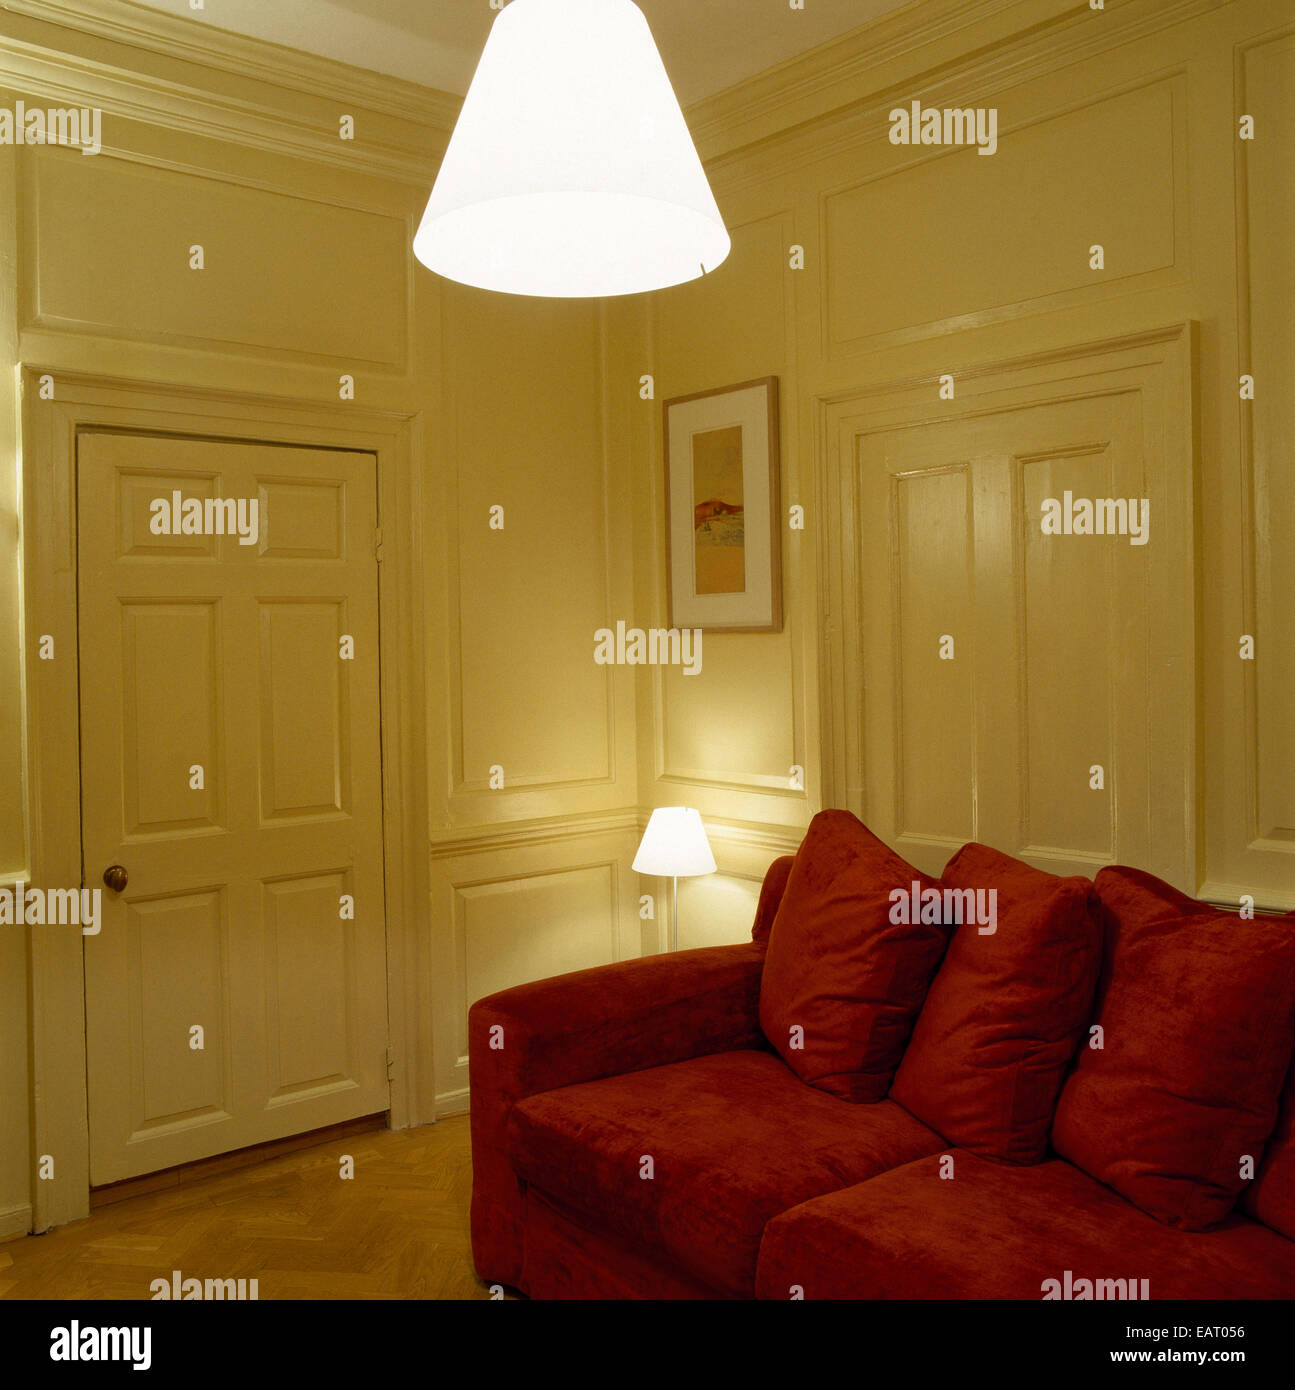 a traditional, yellow living room with wood panelled walls, red